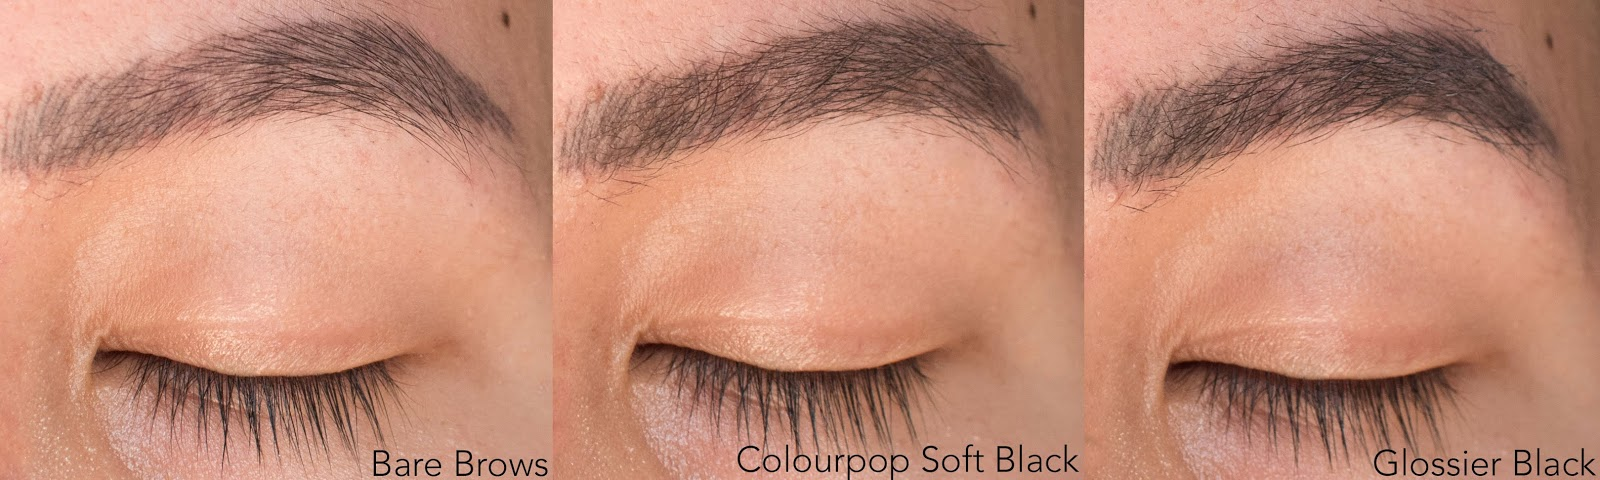 Colourpop Brow Boss Gel vs. Glossier Boy Brow: Comparison, Swatches, and Review